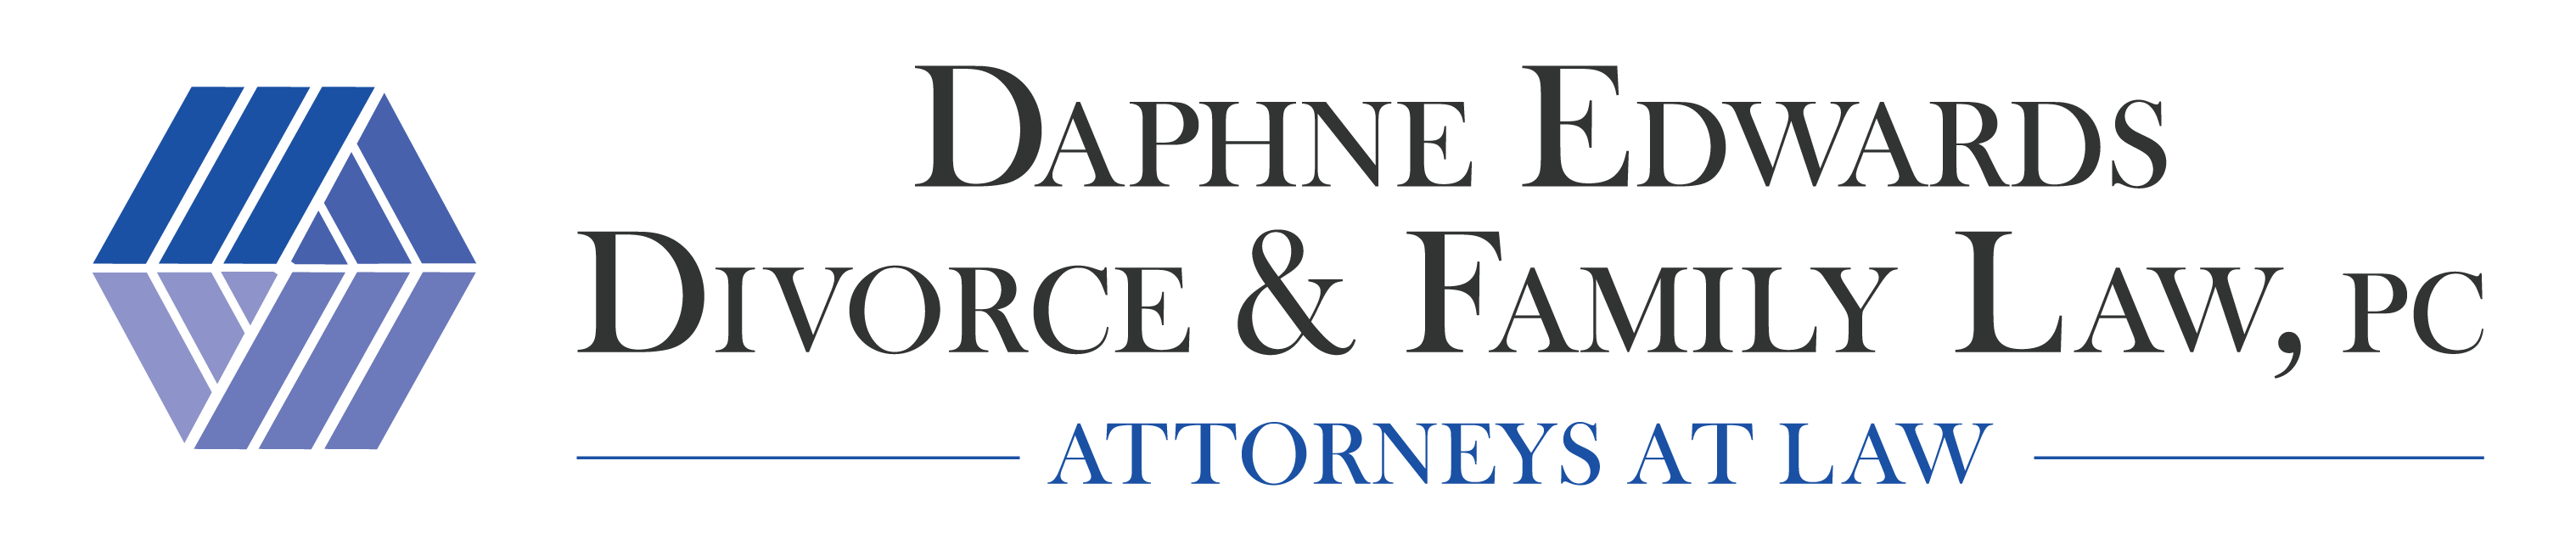 Raleigh Family Law, Divorce, and Appeals